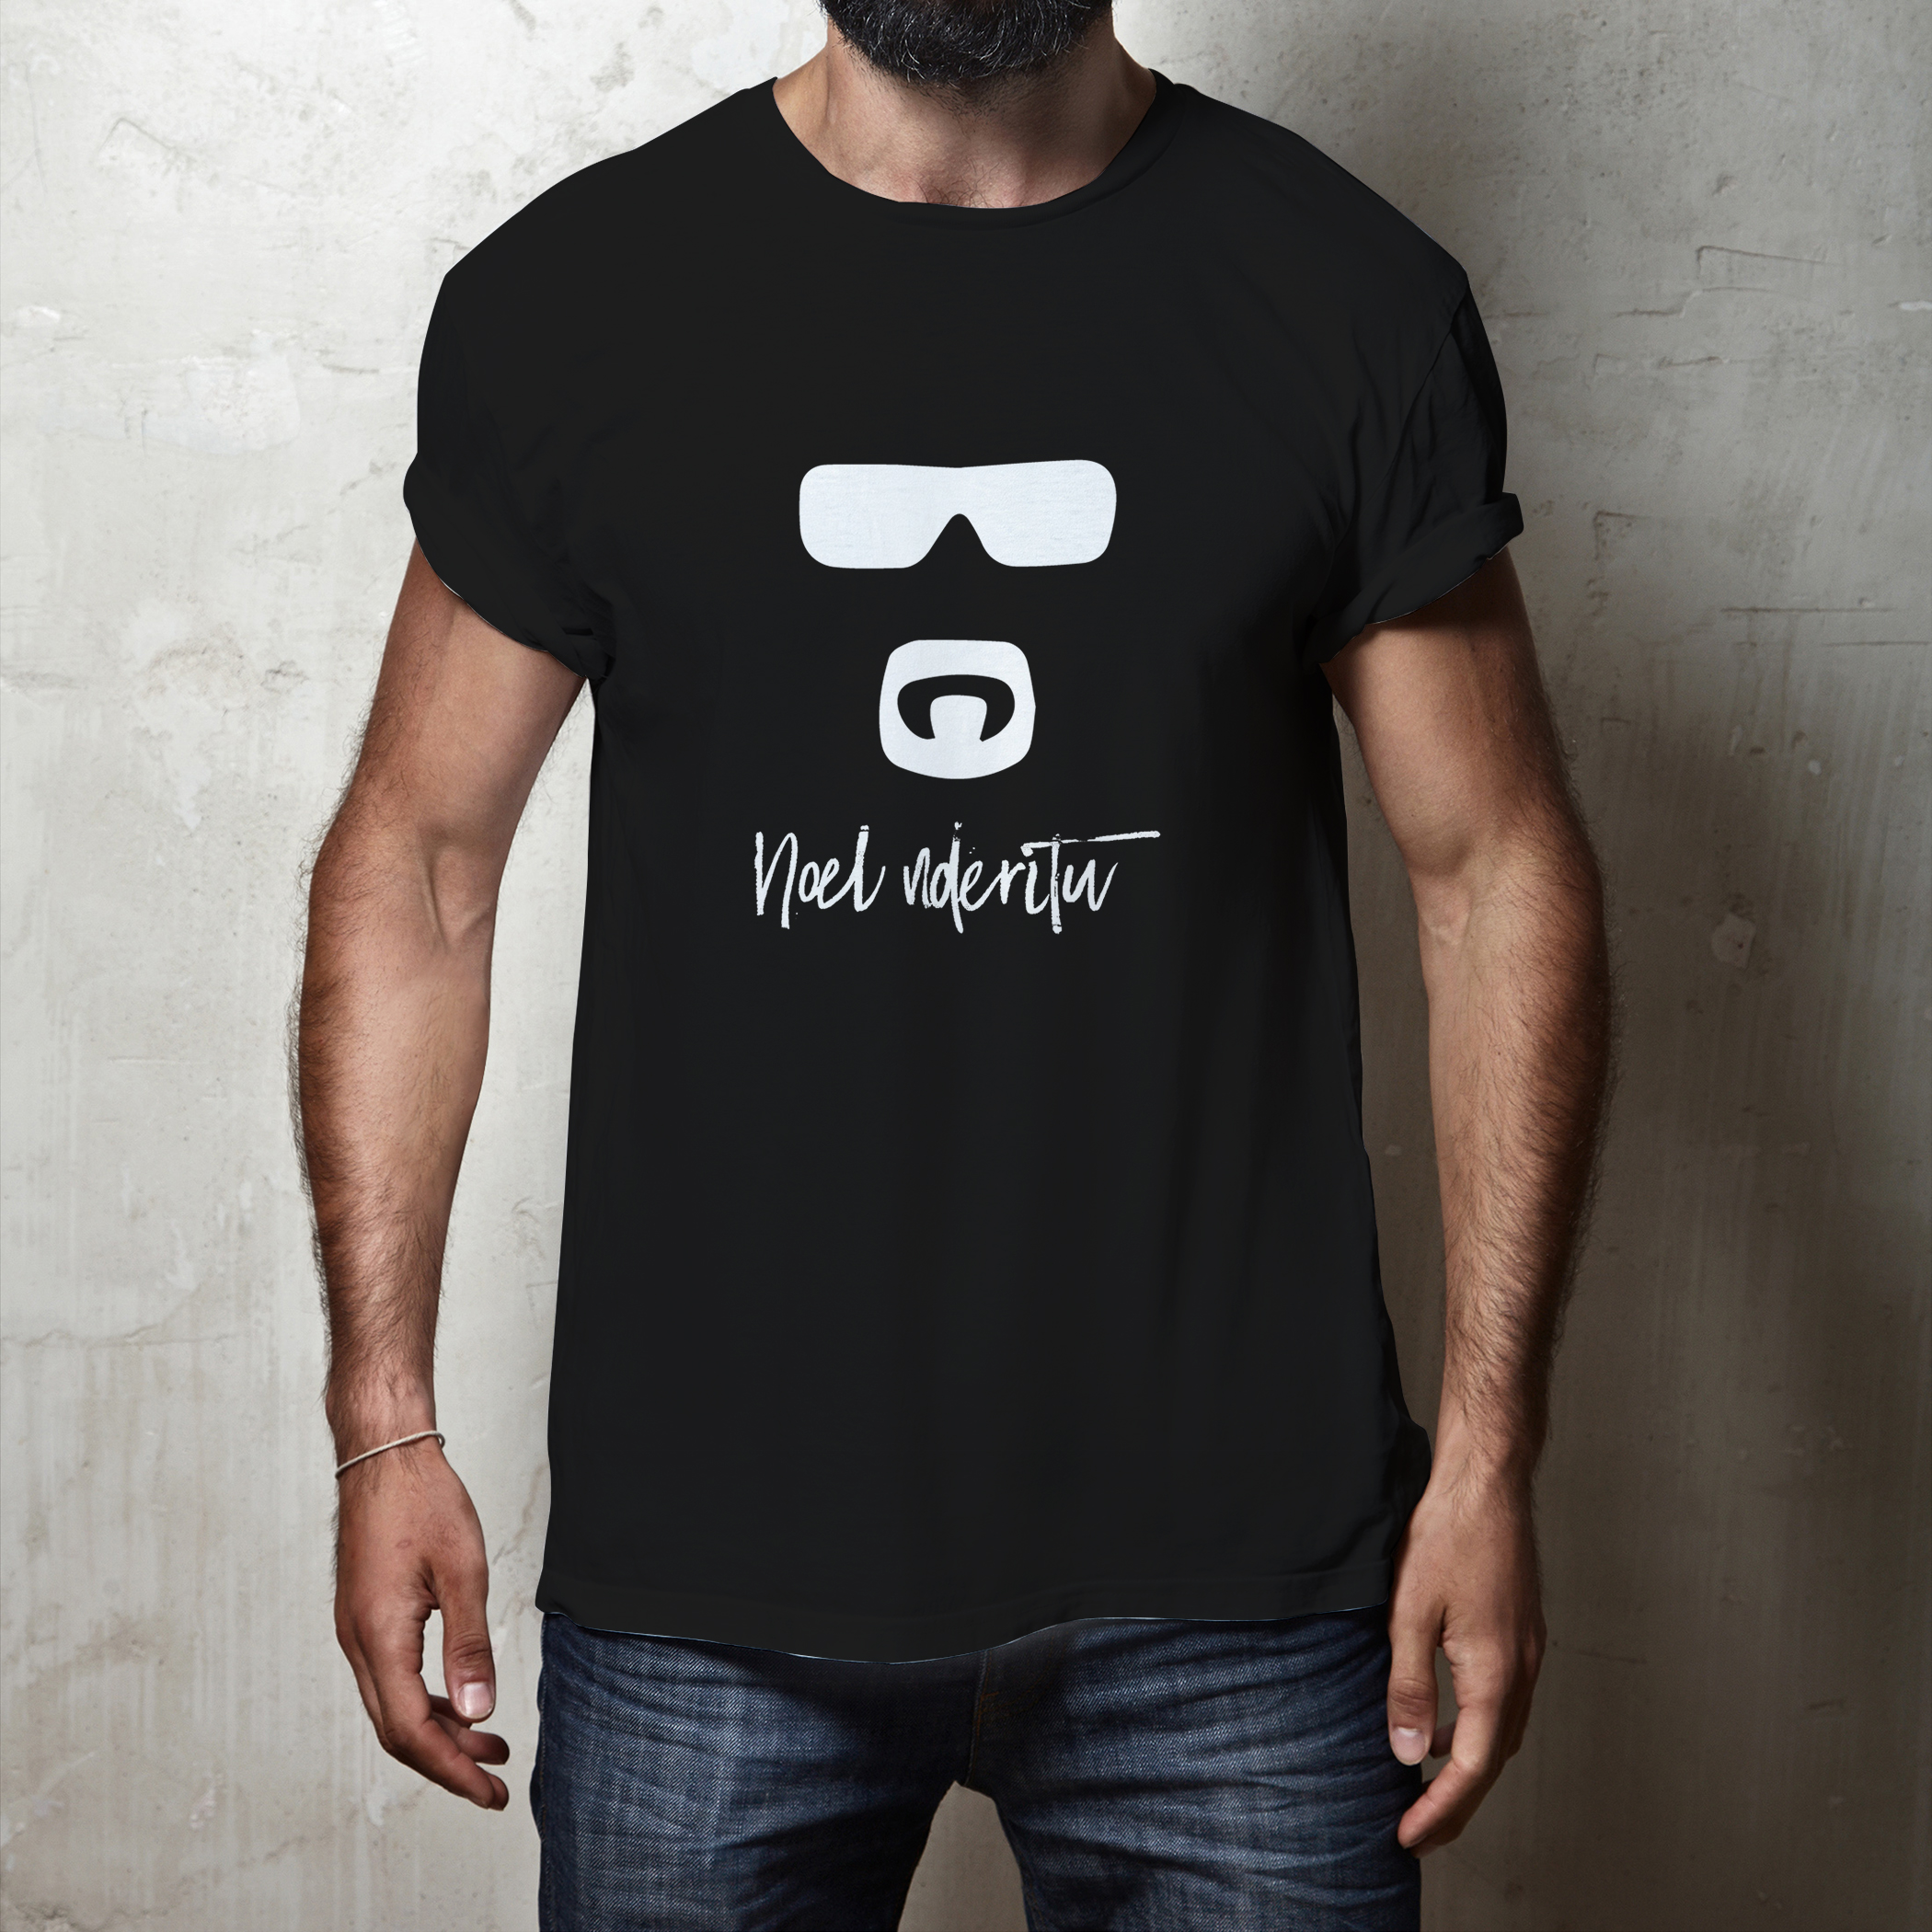 Men's Tshirts -BLACK @KSH.1,000 (S,M,L & XL)